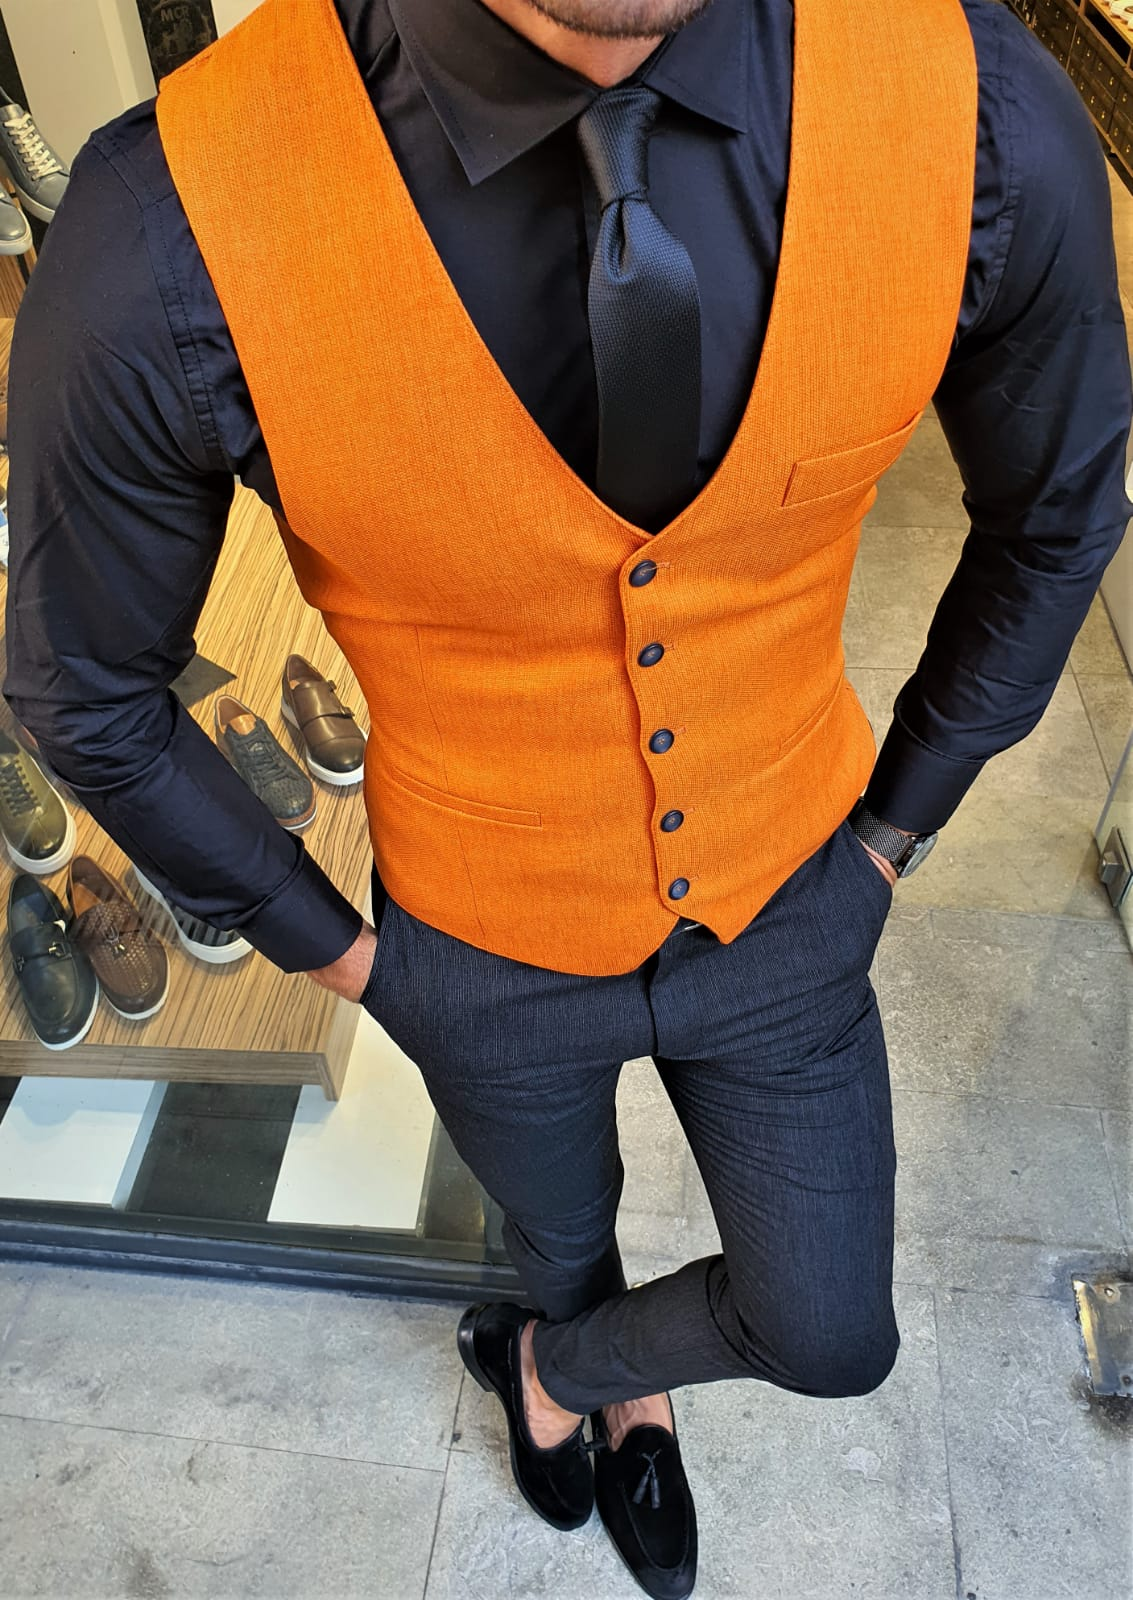 How To Dress For Graduation by GentWith Blog